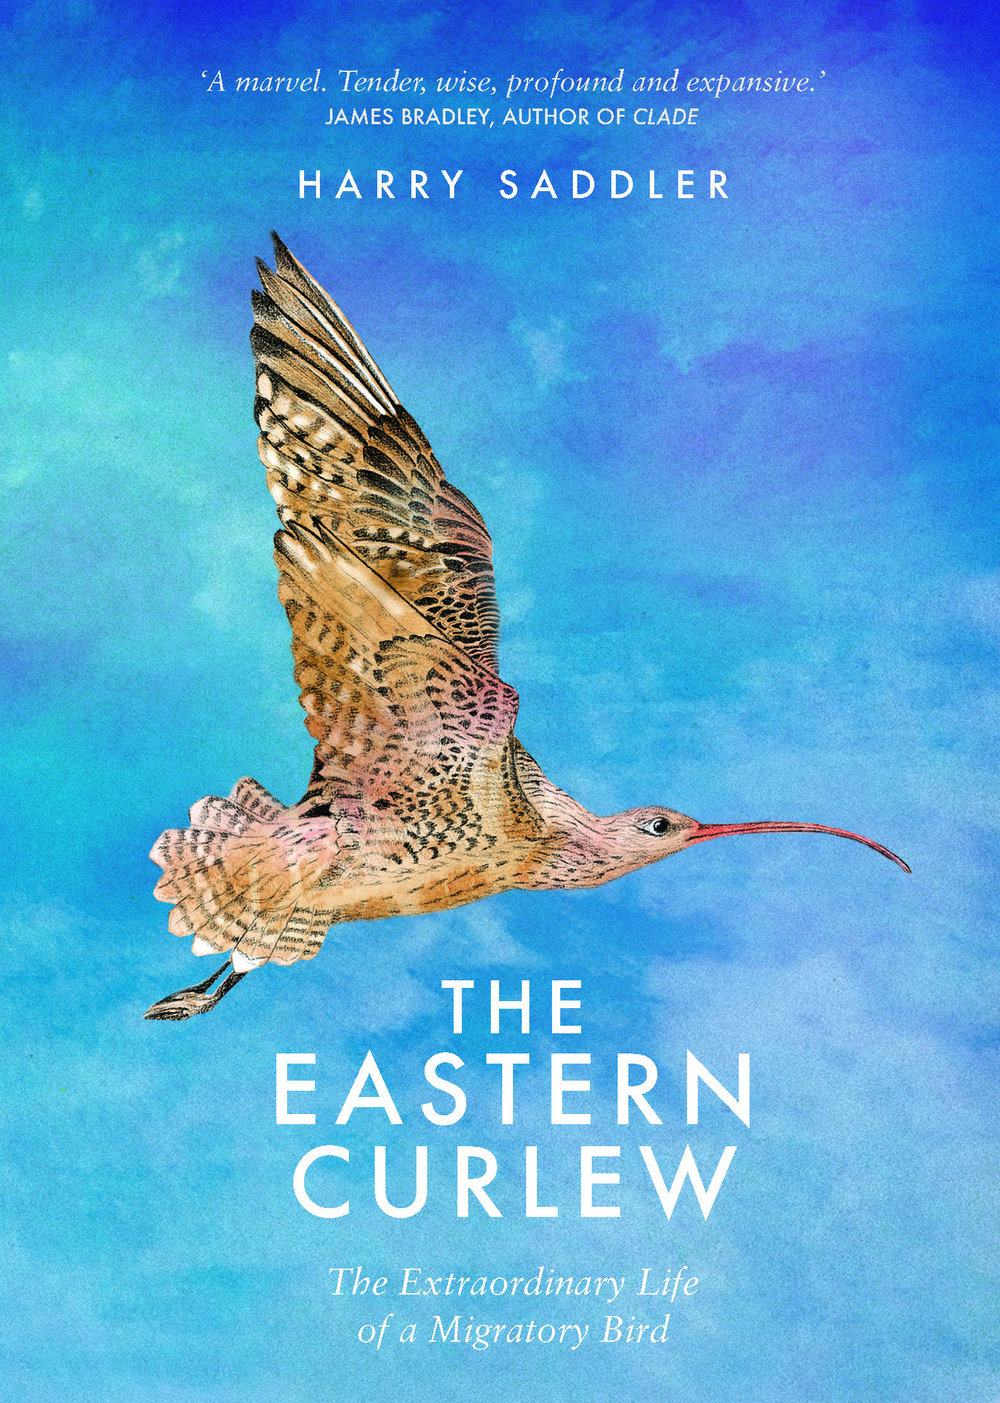 The Eastern Curlew.jpg